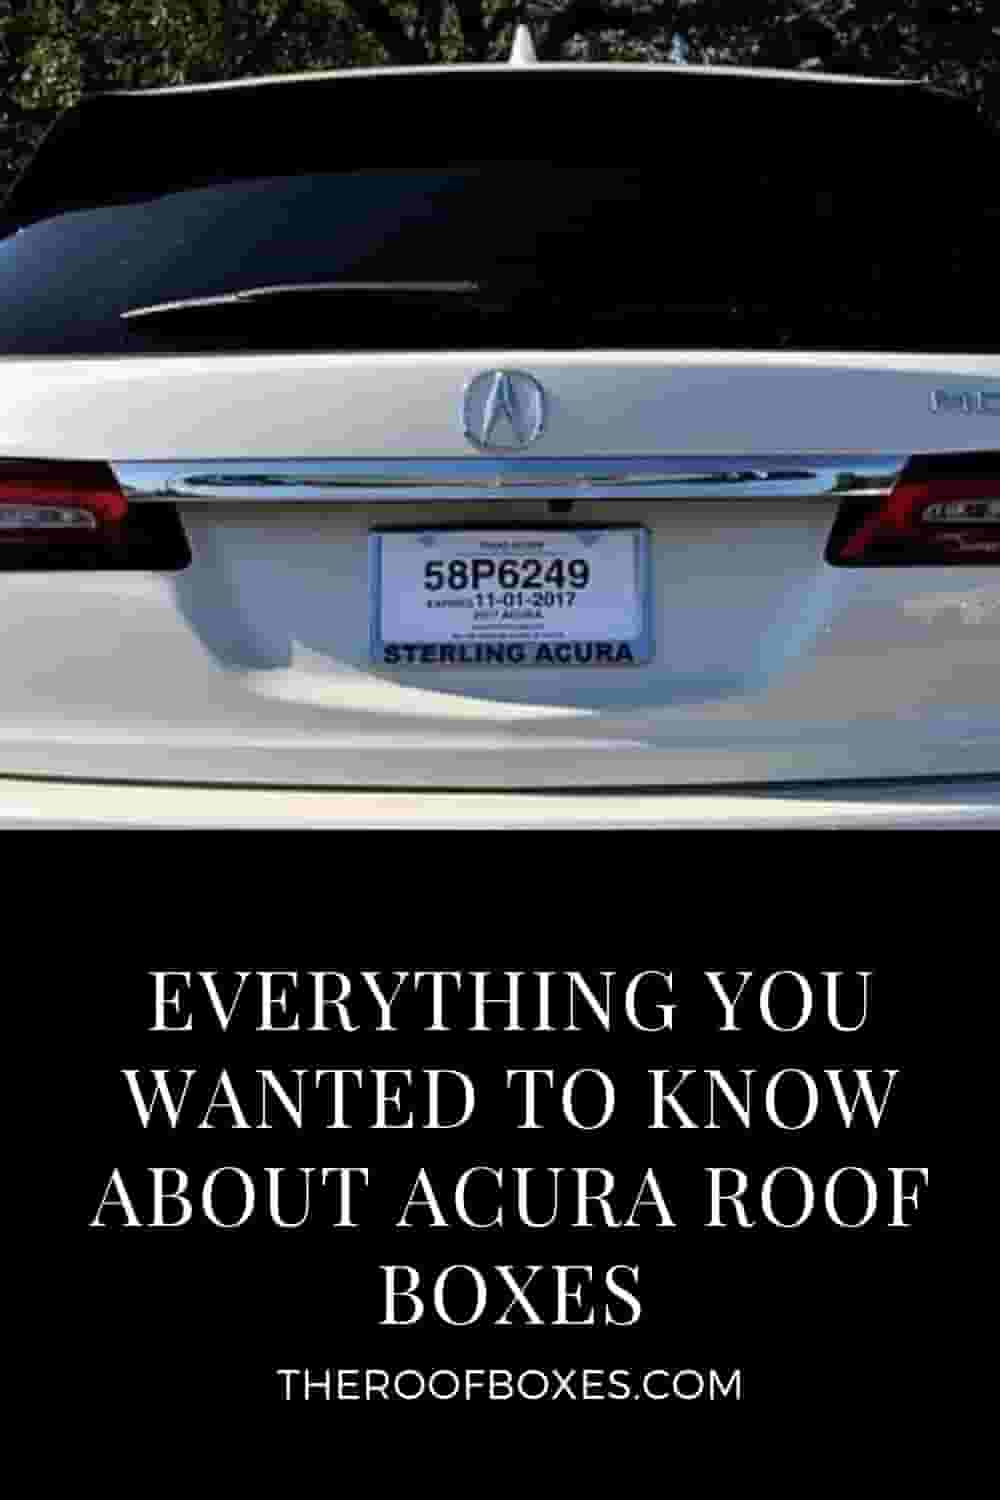 Acura Roof Cargo Box – Reviews and Comparison